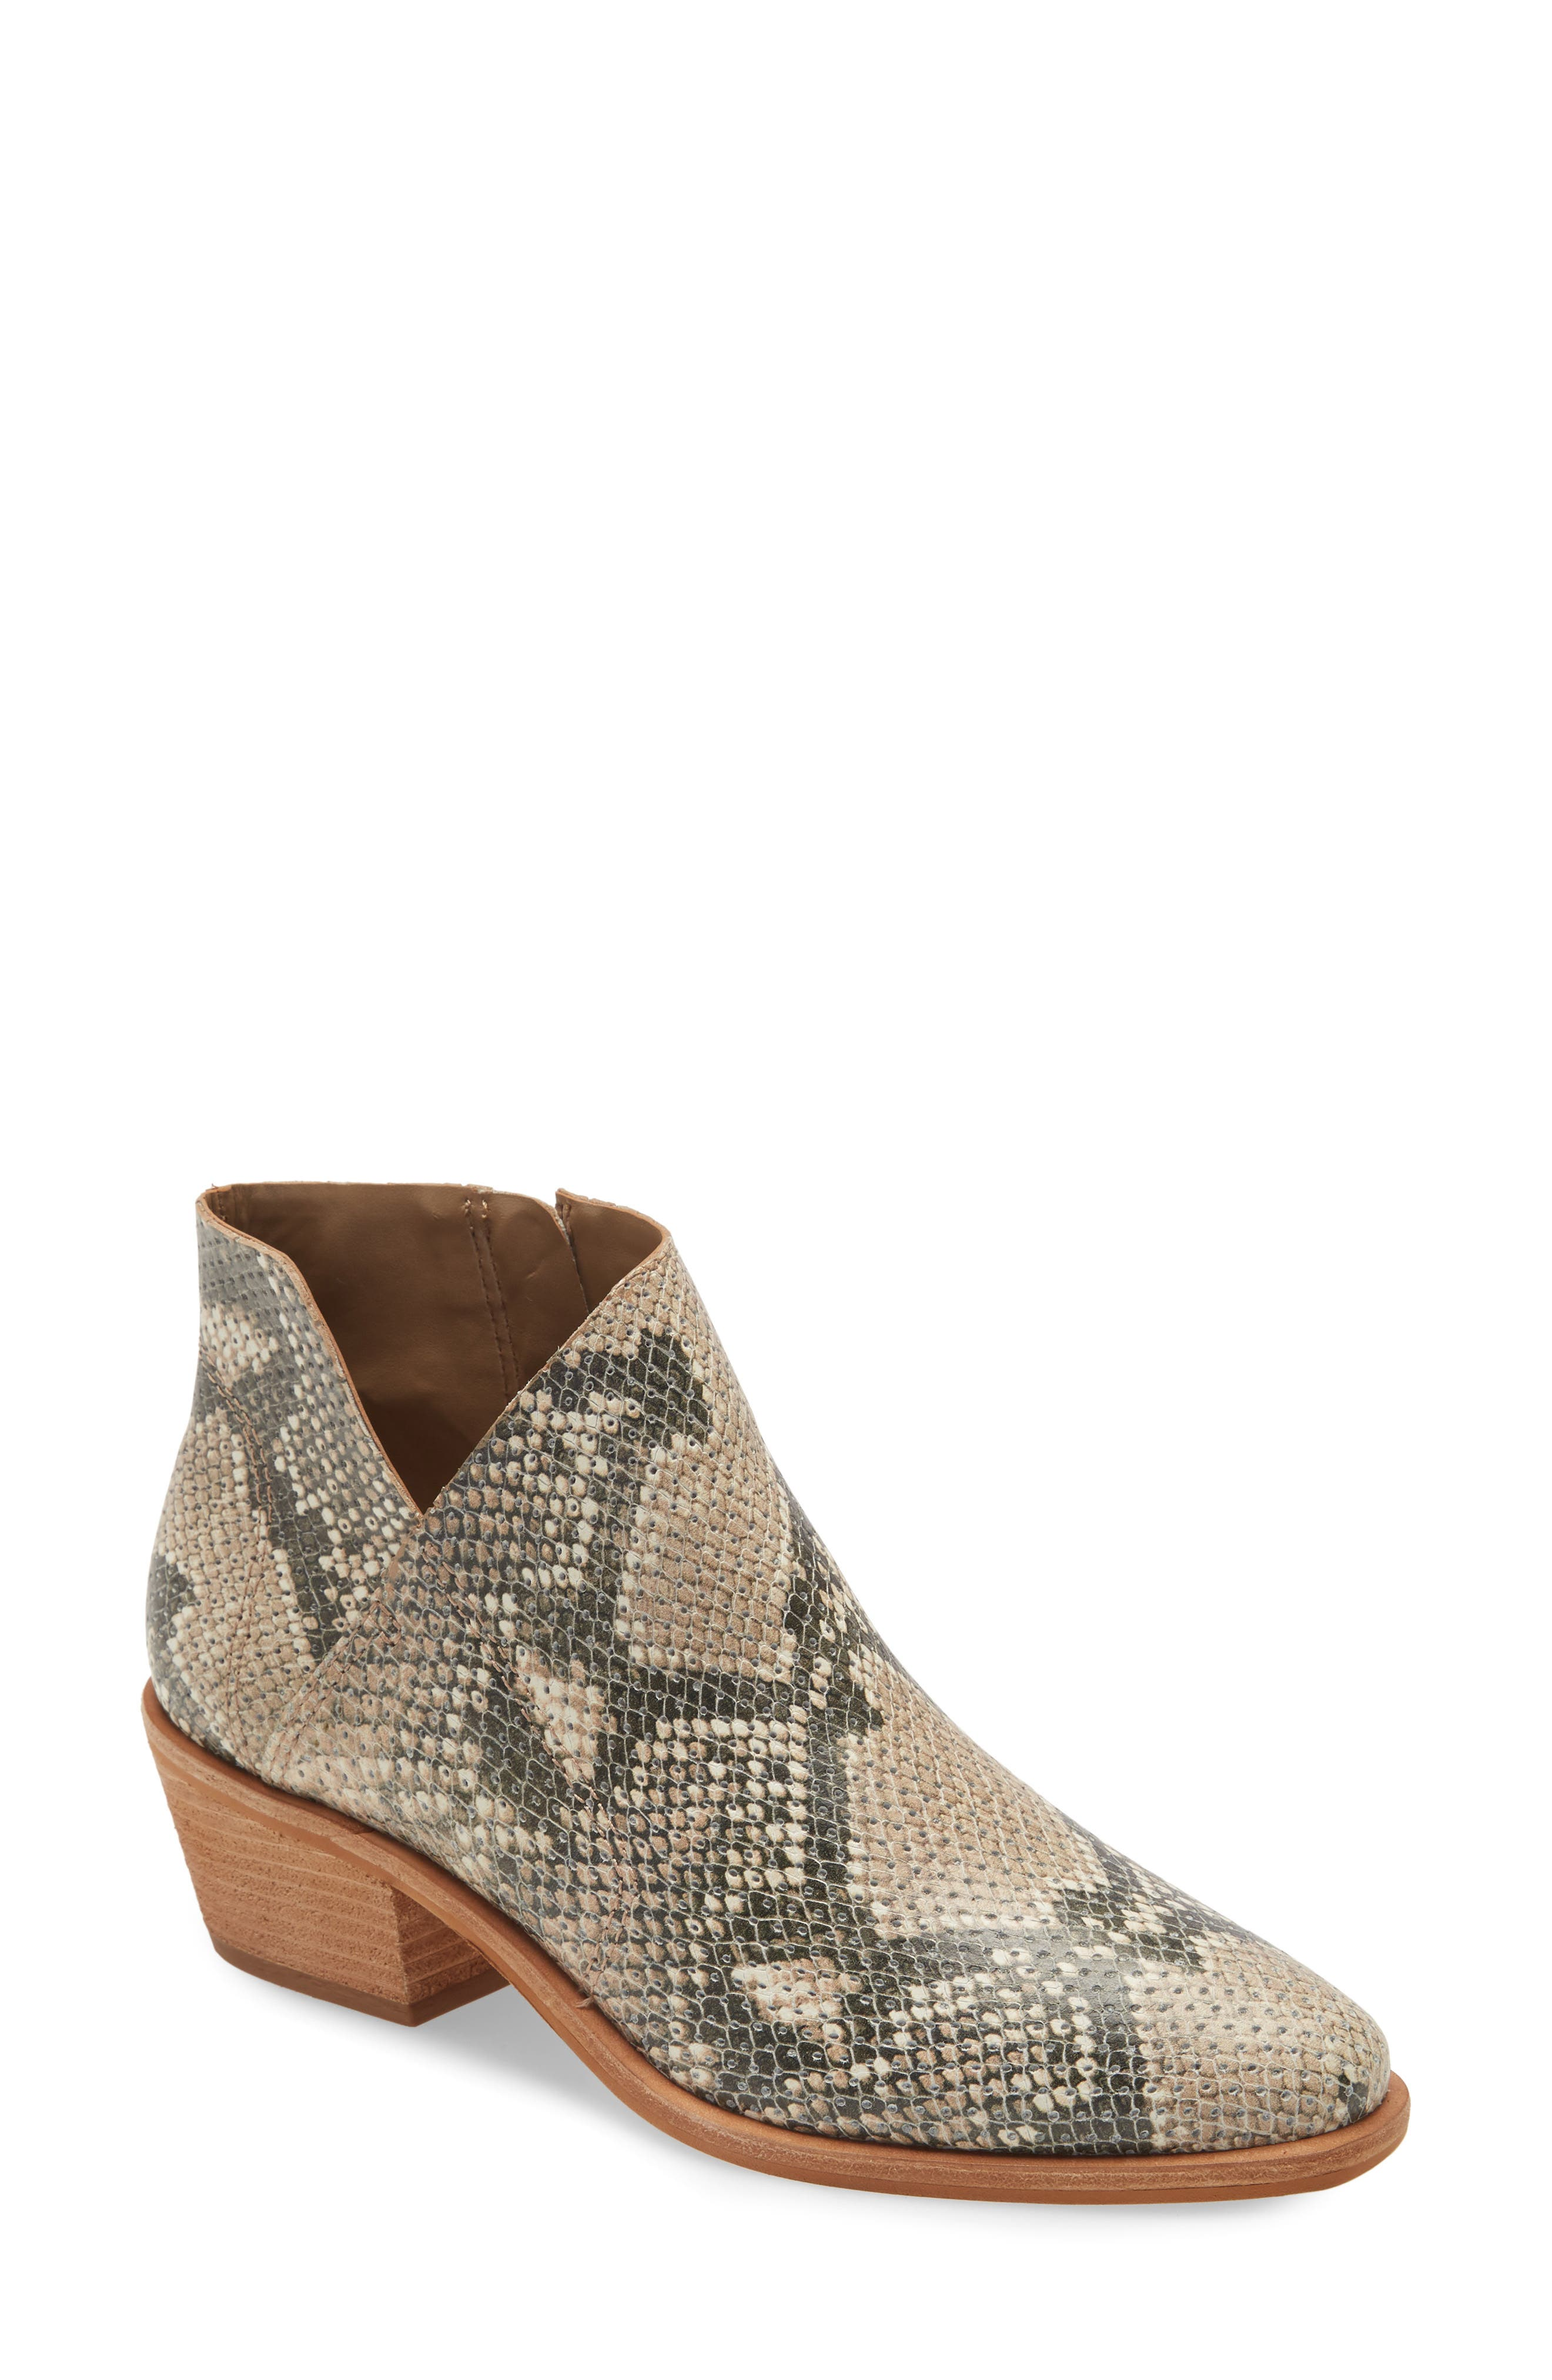 Women's Vince Camuto Booties \u0026 Ankle